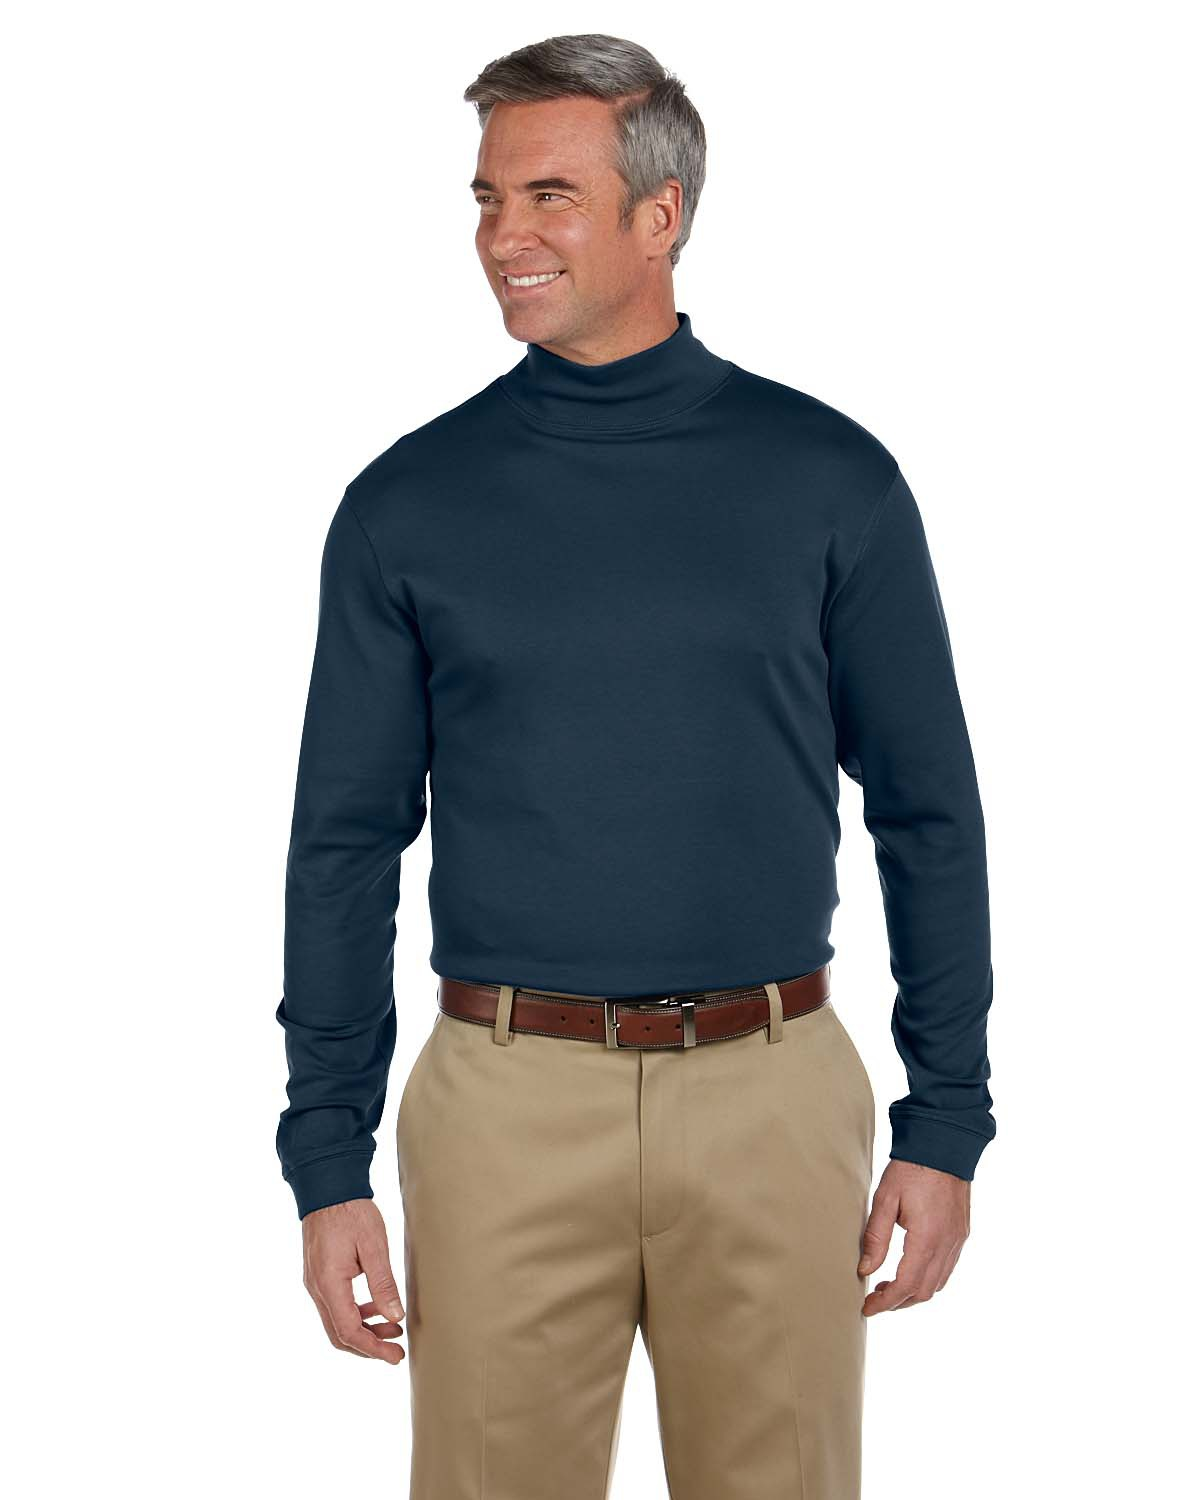 Chestnut hill pima cotton mock neck at big and tall for Big and tall mock turtleneck shirt